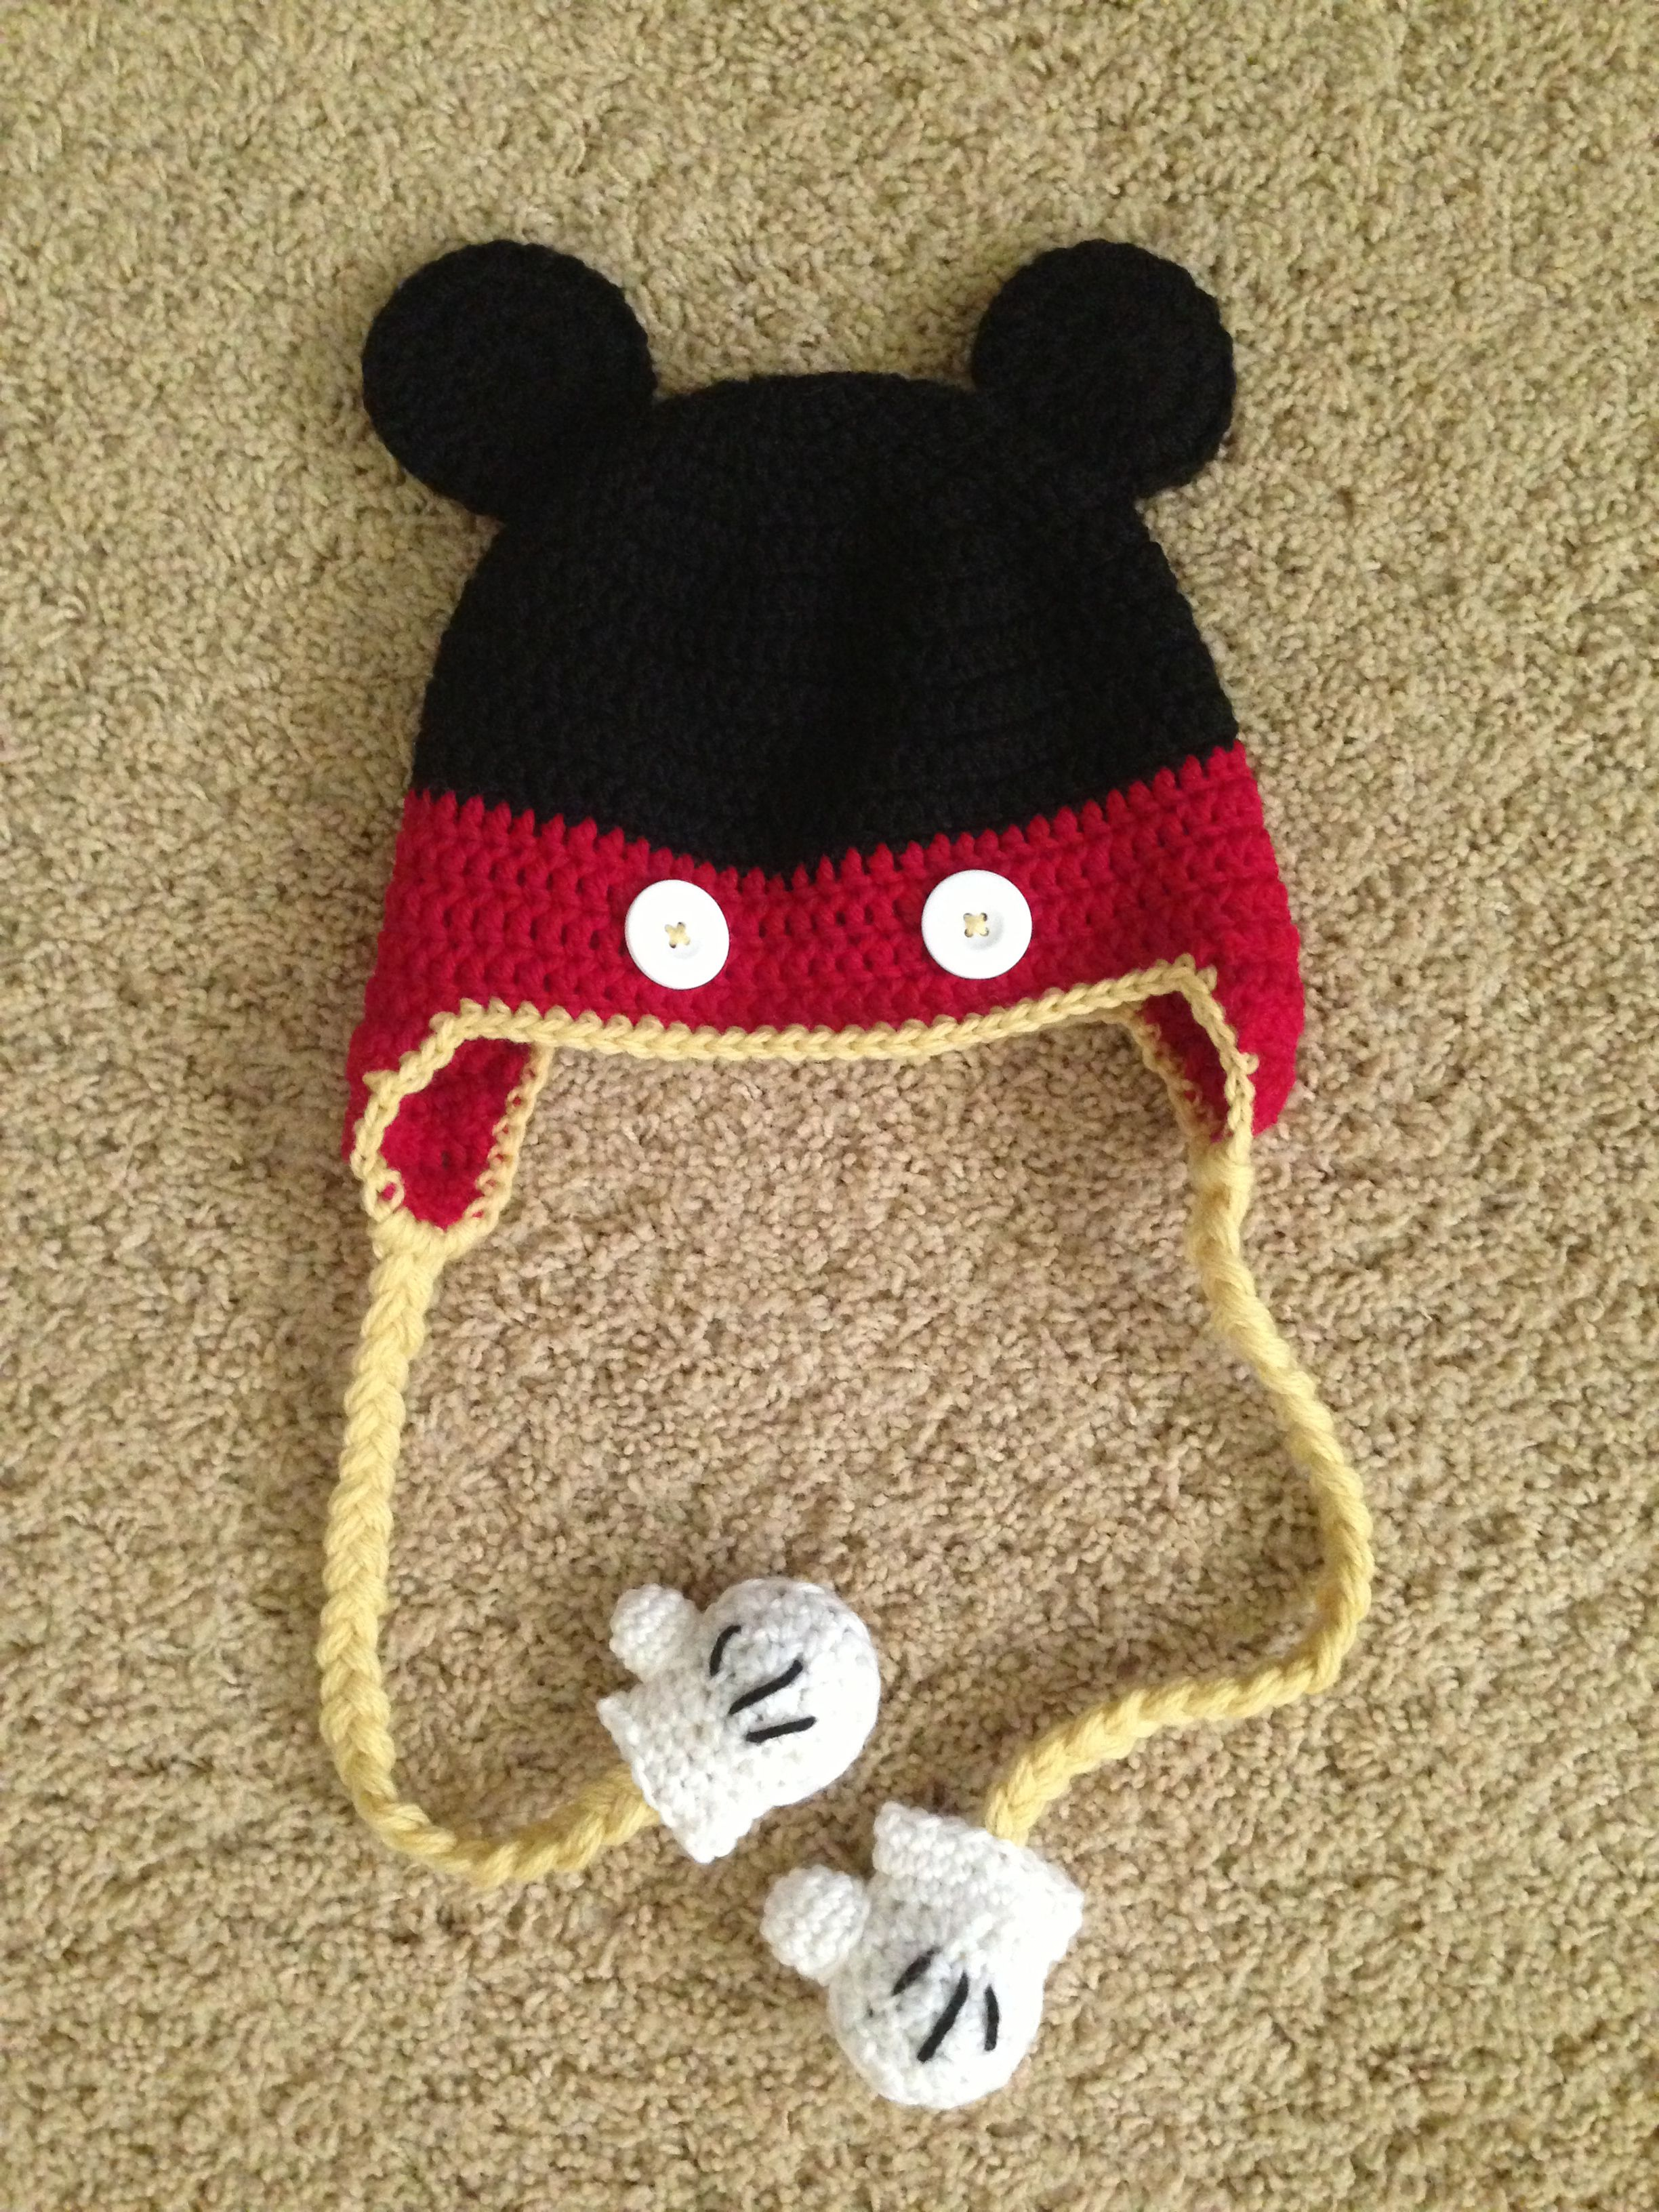 d0608454b82e1f Crochet Mickey Mouse hat. It's the mitten detail that's the winner ...